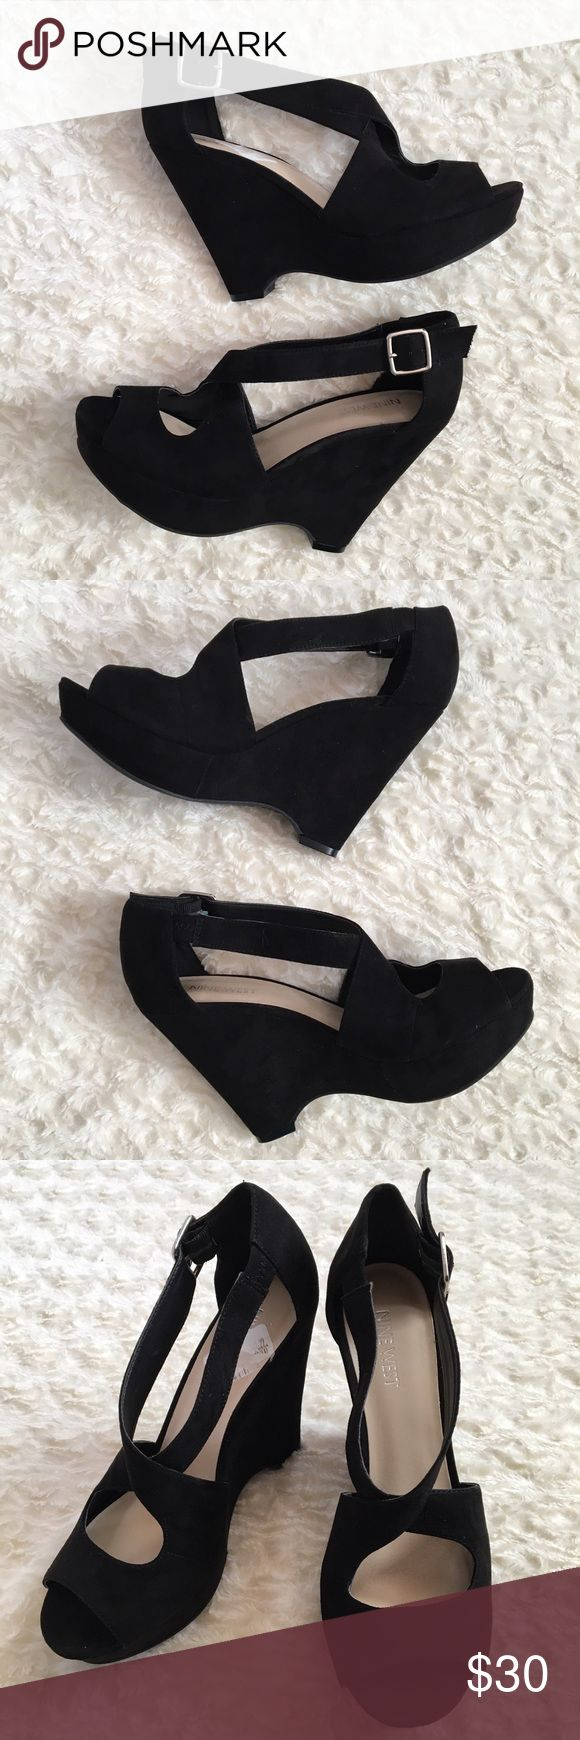 {Nine West} Strappy Heels Black Nine West heels with a suede texture and silver buckle. Barely worn and is NWT. Still has price tag sticker & is a size 7.5. Nine West Shoes Heels